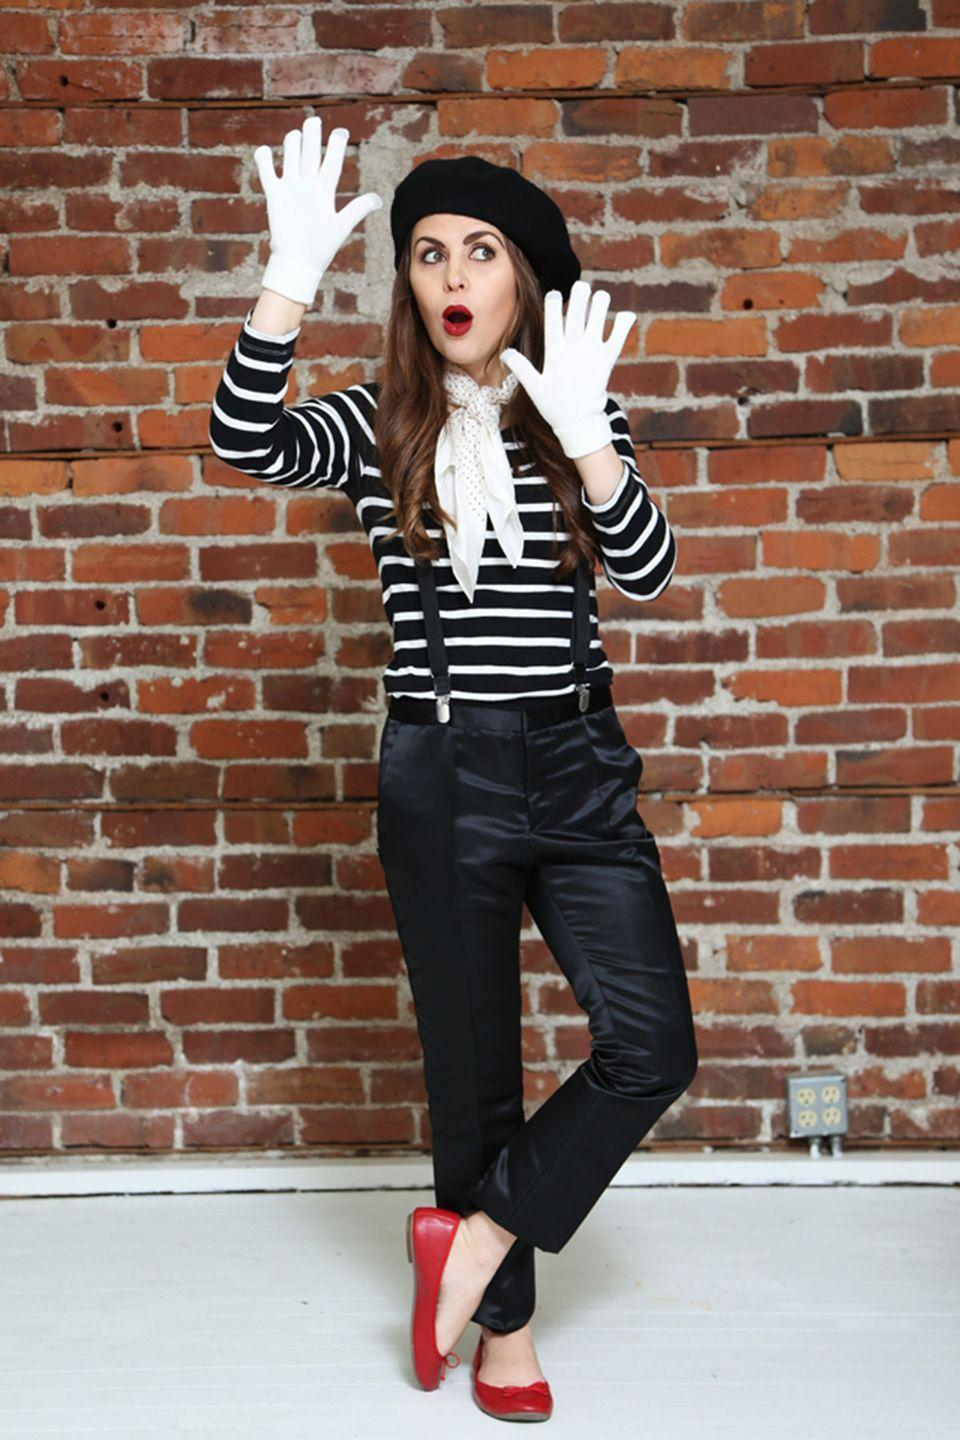 """<p>Think outside the box (and then act within it) with this clever costume.</p><p><strong>Get the tutorial at <a href=""""http://dresscorilynn.com/2014/10/29/fyc-halloween-french-mime/"""" rel=""""nofollow noopener"""" target=""""_blank"""" data-ylk=""""slk:Dress Cori Lynn"""" class=""""link rapid-noclick-resp"""">Dress Cori Lynn</a>.</strong></p><p><strong><a class=""""link rapid-noclick-resp"""" href=""""https://www.amazon.com/Kangaroo-Wool-Black-Beret-Hat/dp/B00SUMGC5M/ref=sr_1_2?dchild=1&keywords=black+beret&qid=1624891954&sr=8-2&tag=syn-yahoo-20&ascsubtag=%5Bartid%7C10050.g.4571%5Bsrc%7Cyahoo-us"""" rel=""""nofollow noopener"""" target=""""_blank"""" data-ylk=""""slk:SHOP BERETS"""">SHOP BERETS</a><br></strong></p>"""